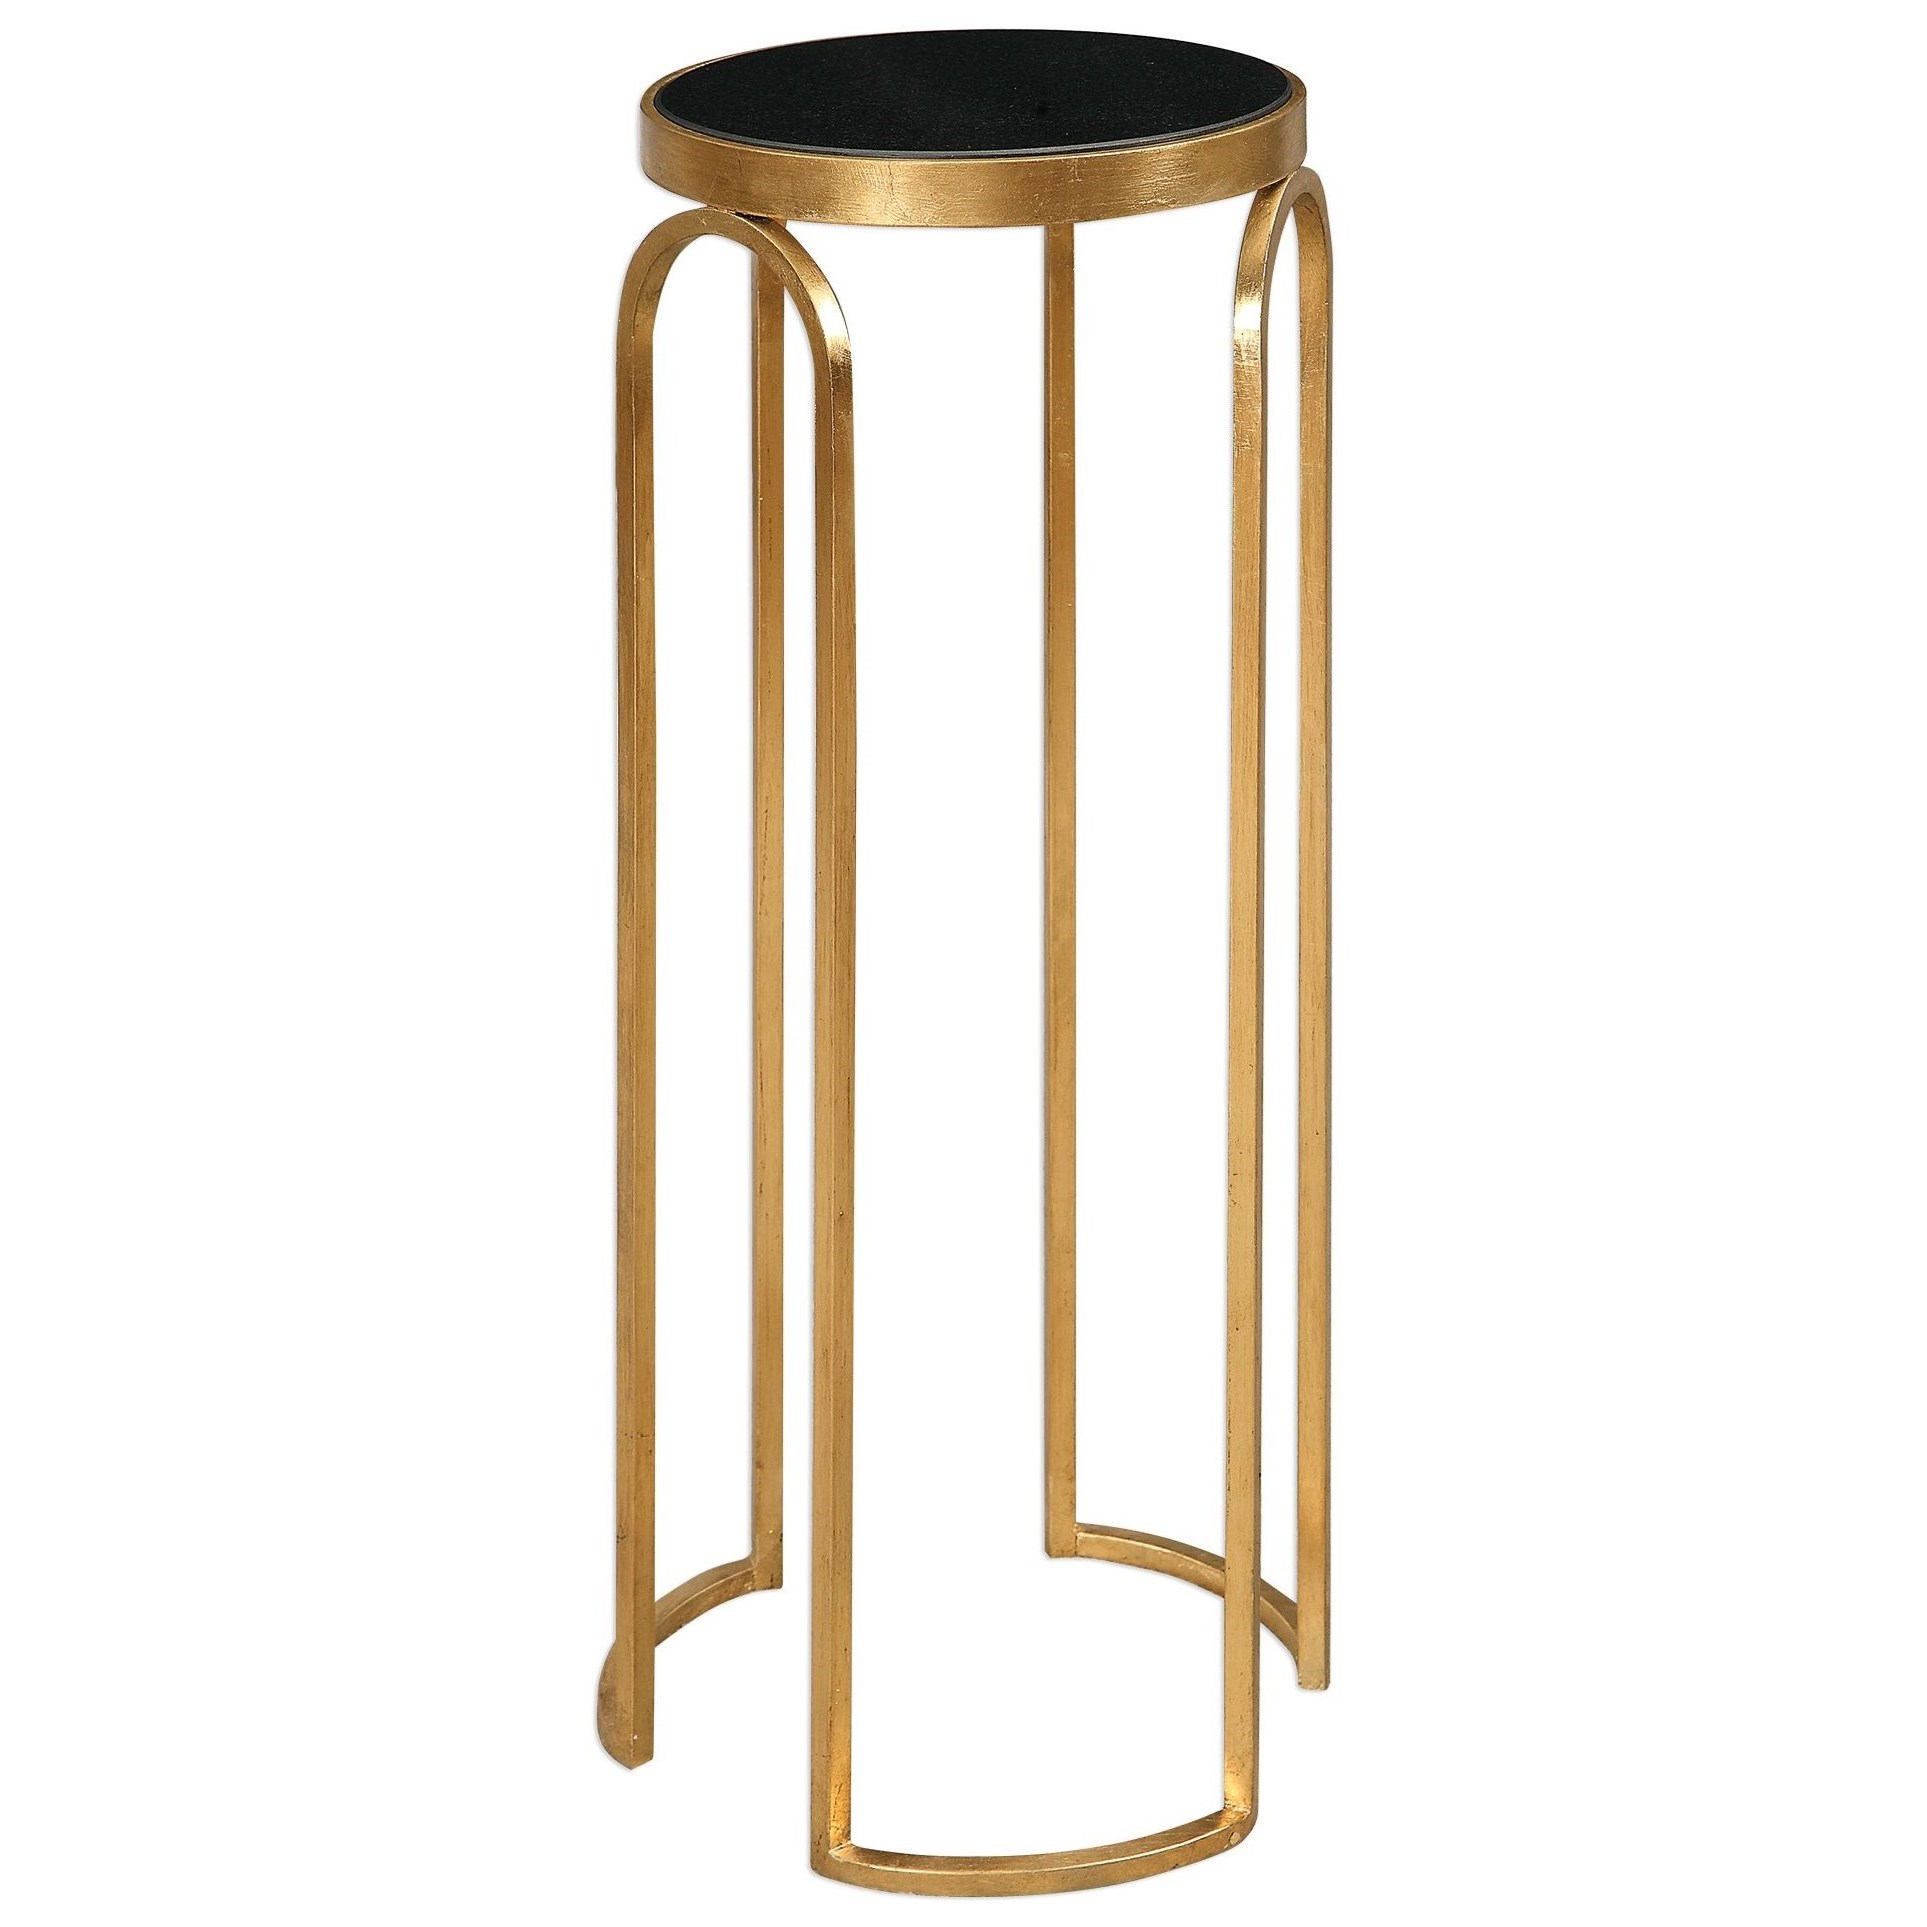 uttermost accent furniture occasional tables novalie gold products color table with drawer wall unit real marble top coffee metal bronze industrial chairs kitchen console antique